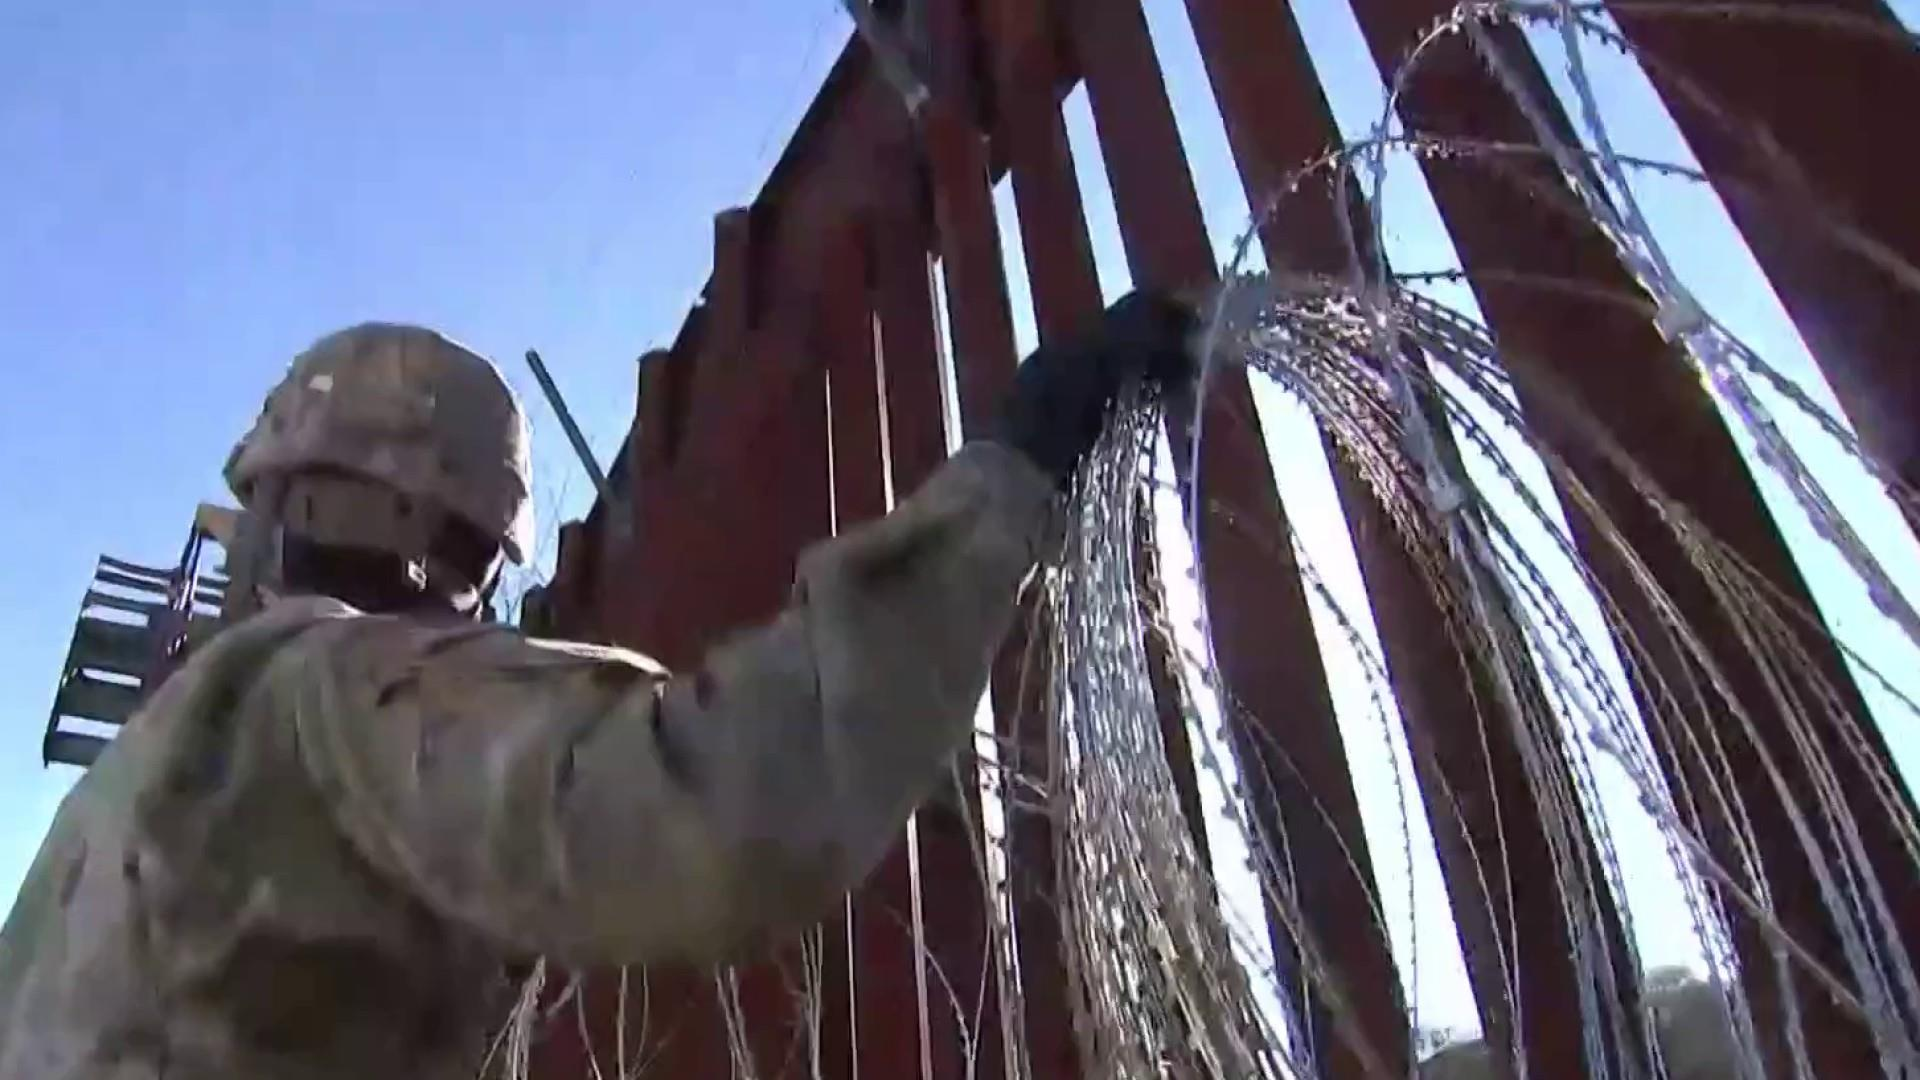 The 'human wall' of soldiers at the U.S. southern border